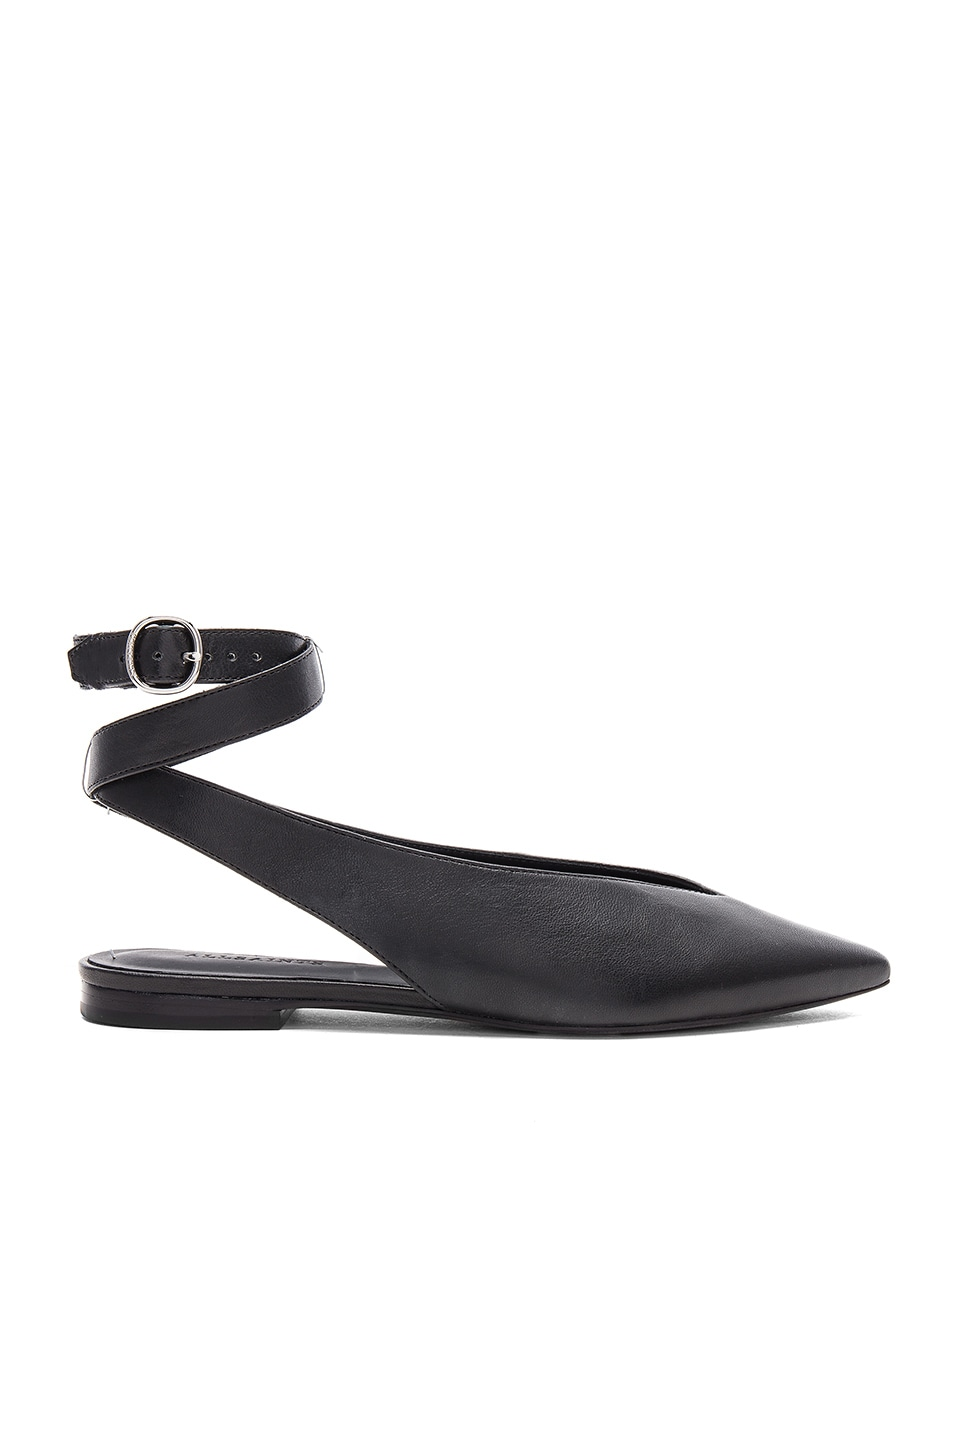 ALLSAINTS Cory Flat in Black